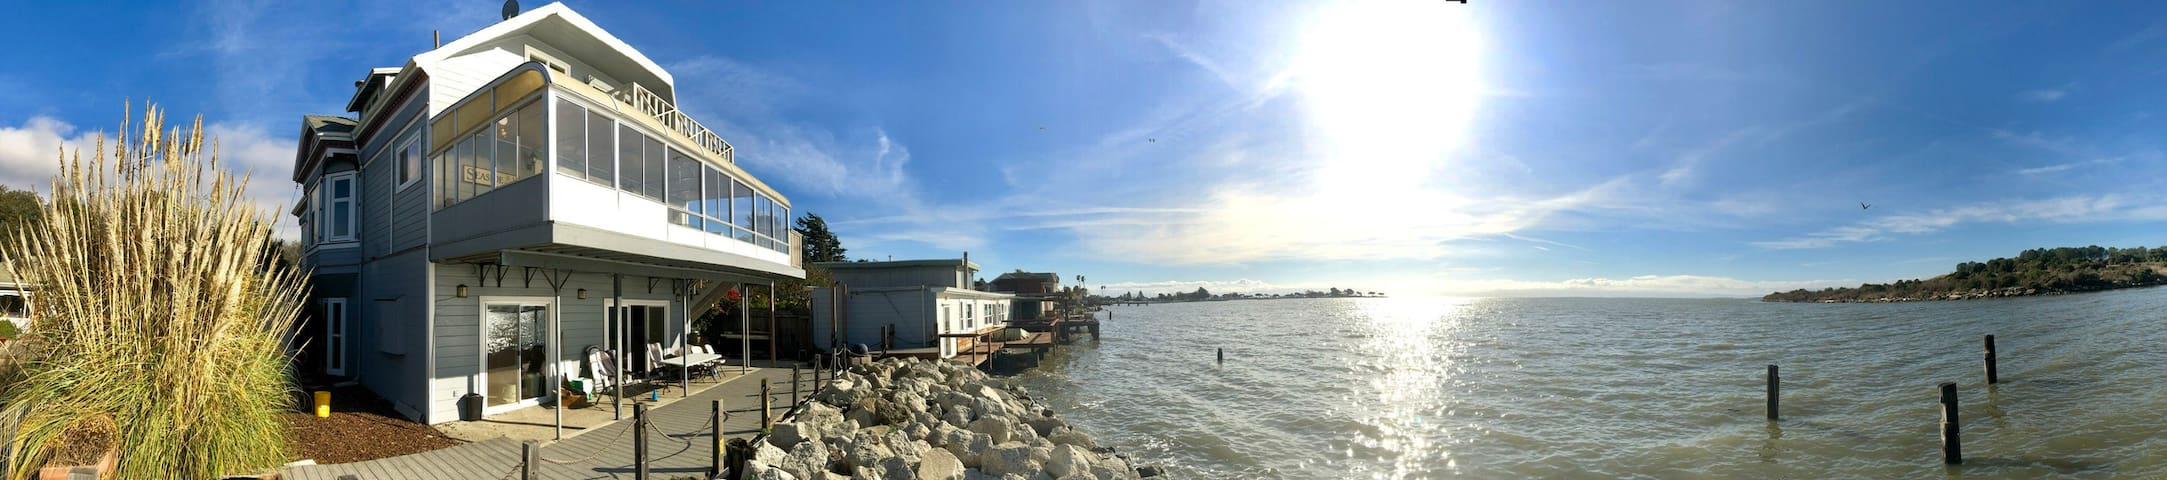 San Francisco Bay Water Front Home